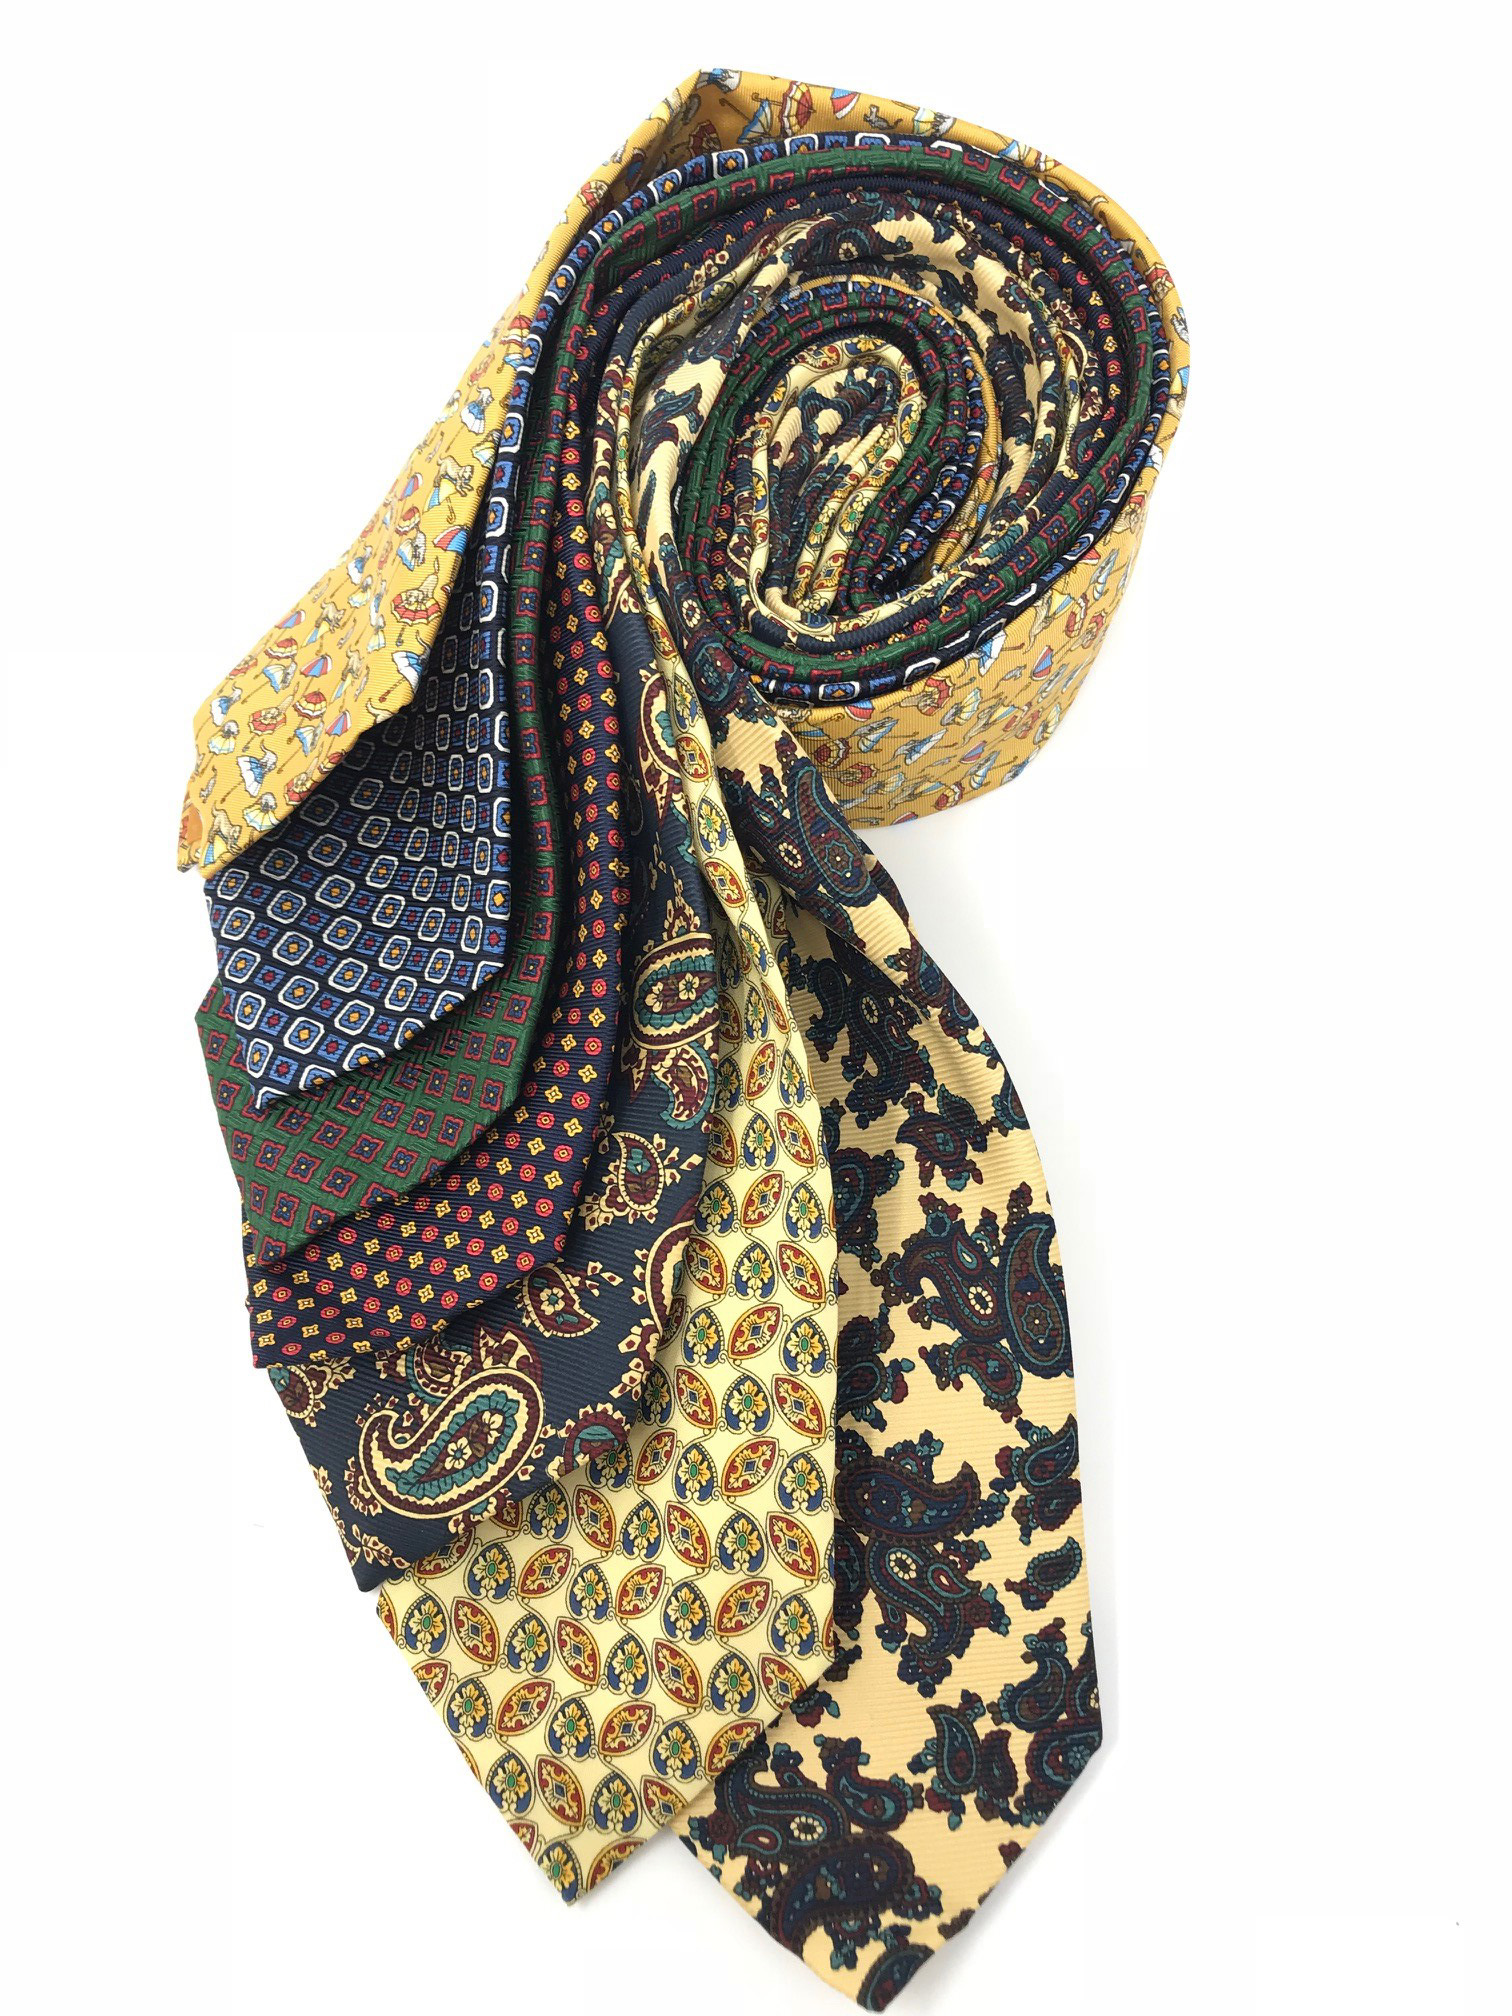 Cavenagh of London 7Piece 100% Pure Silk Ties Made in UK (618D)RRP£139.99